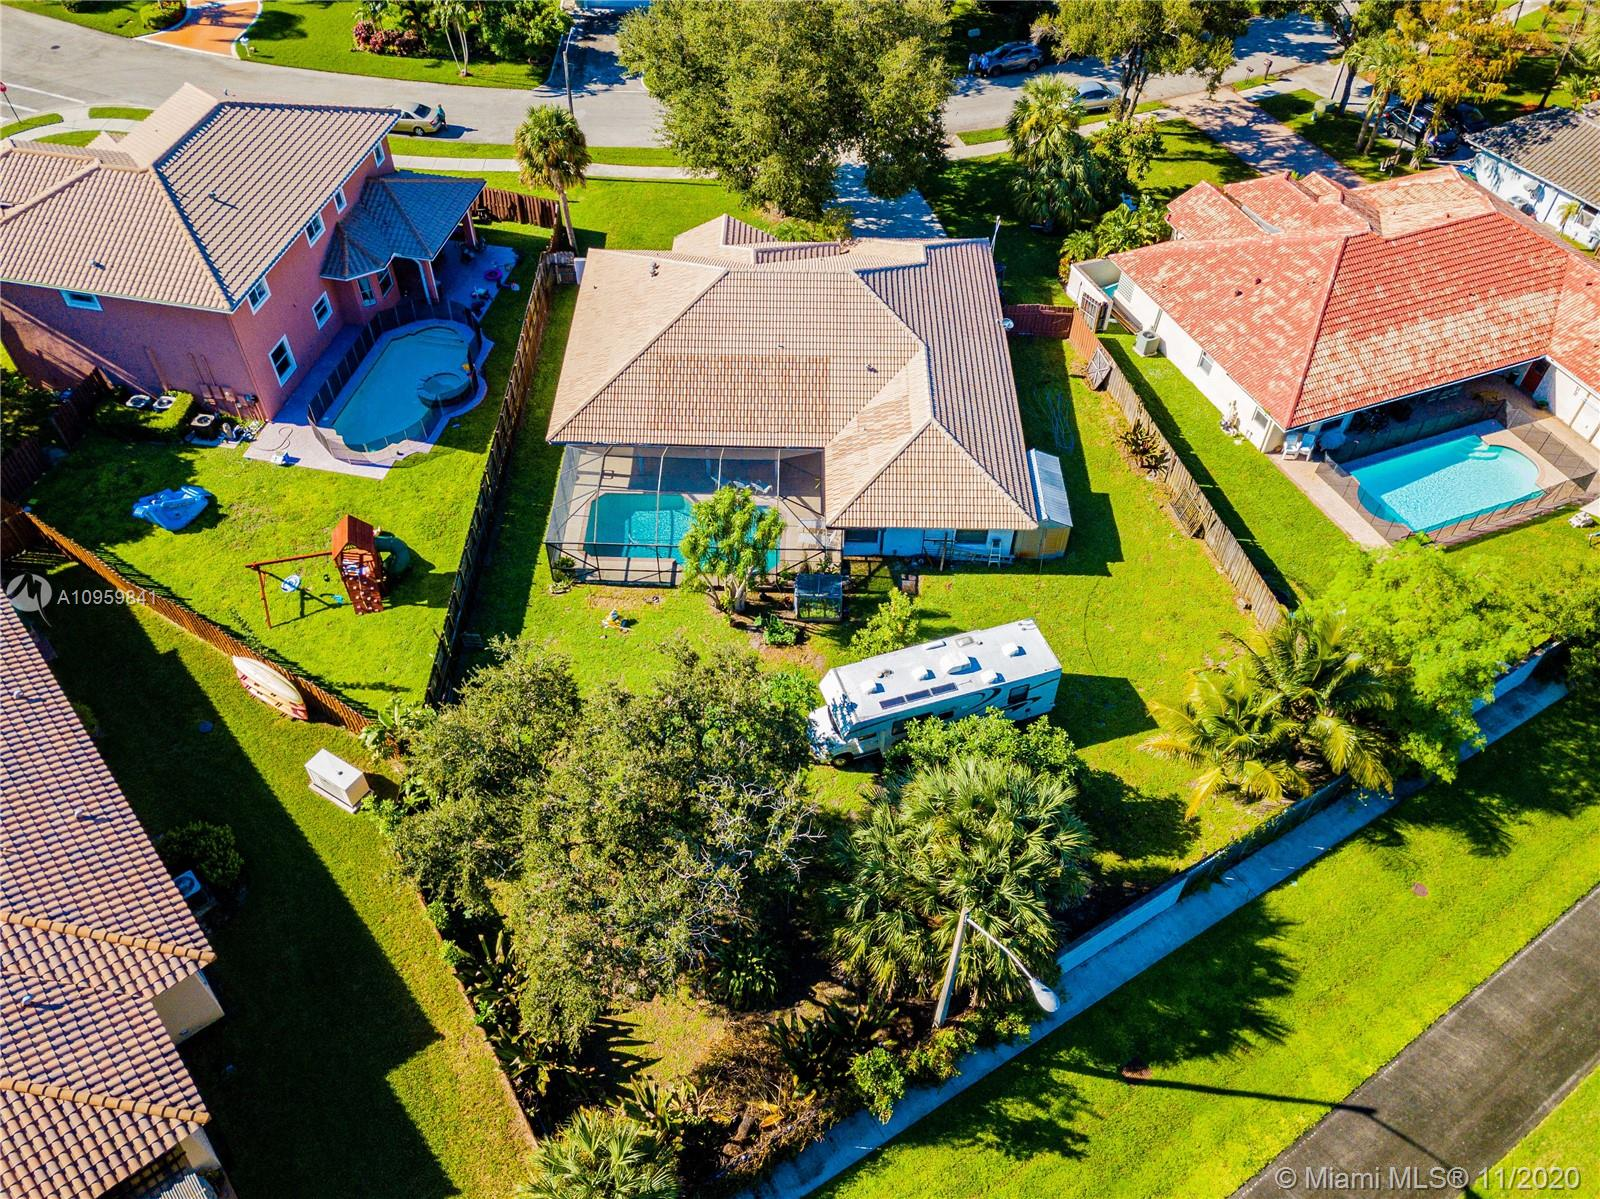 ****SHOWINGS BEGIN 11/25/20**** WOWZER, WHAT A LOVELY HOME THIS IS!!! 4 BEDROOM / 2.5 BATH POOL HOME IN PARADISE. 2600 SF UNDER AIR. HUGE 16K SF LOT WITH ROOM TO PARK A MOTORHOME. SCREENED IN POOL AREA OVERLOOKS YOUR LUSH GREENERY. DARK TILED FLOOR IN COMMON AREA GIVES THIS HOME OODLES OF CHARACTER - LOVELY LAYOUT, FROM LARGE MASTER SUITE POOLSIDE, AROUND TO THE KITCHEN AND FAMILY ROOM FLOWING INTO THE BACK BEDROOMS. ROOM FOR THE WHOLE FAMILY TO SPREAD OUT AND TAKE THEIR CORNER AND THEN MEET BACK BY THE POOL AS THE FUN CONTINUES. OPEN AND WARM ENERGY ABOUNDS. 2 CAR GARAGE. STORAGE SHED FOR YOUR TOYS. LAUNDRY ROOM. HURRICANE SHUTTERS. AND THE LOCATION - THE MOST BEAUTIFUL GATED DEVELOPMENT YOU'VE NEVER SEEN. YOU WILL FALL IN LOVE. COME HOME!